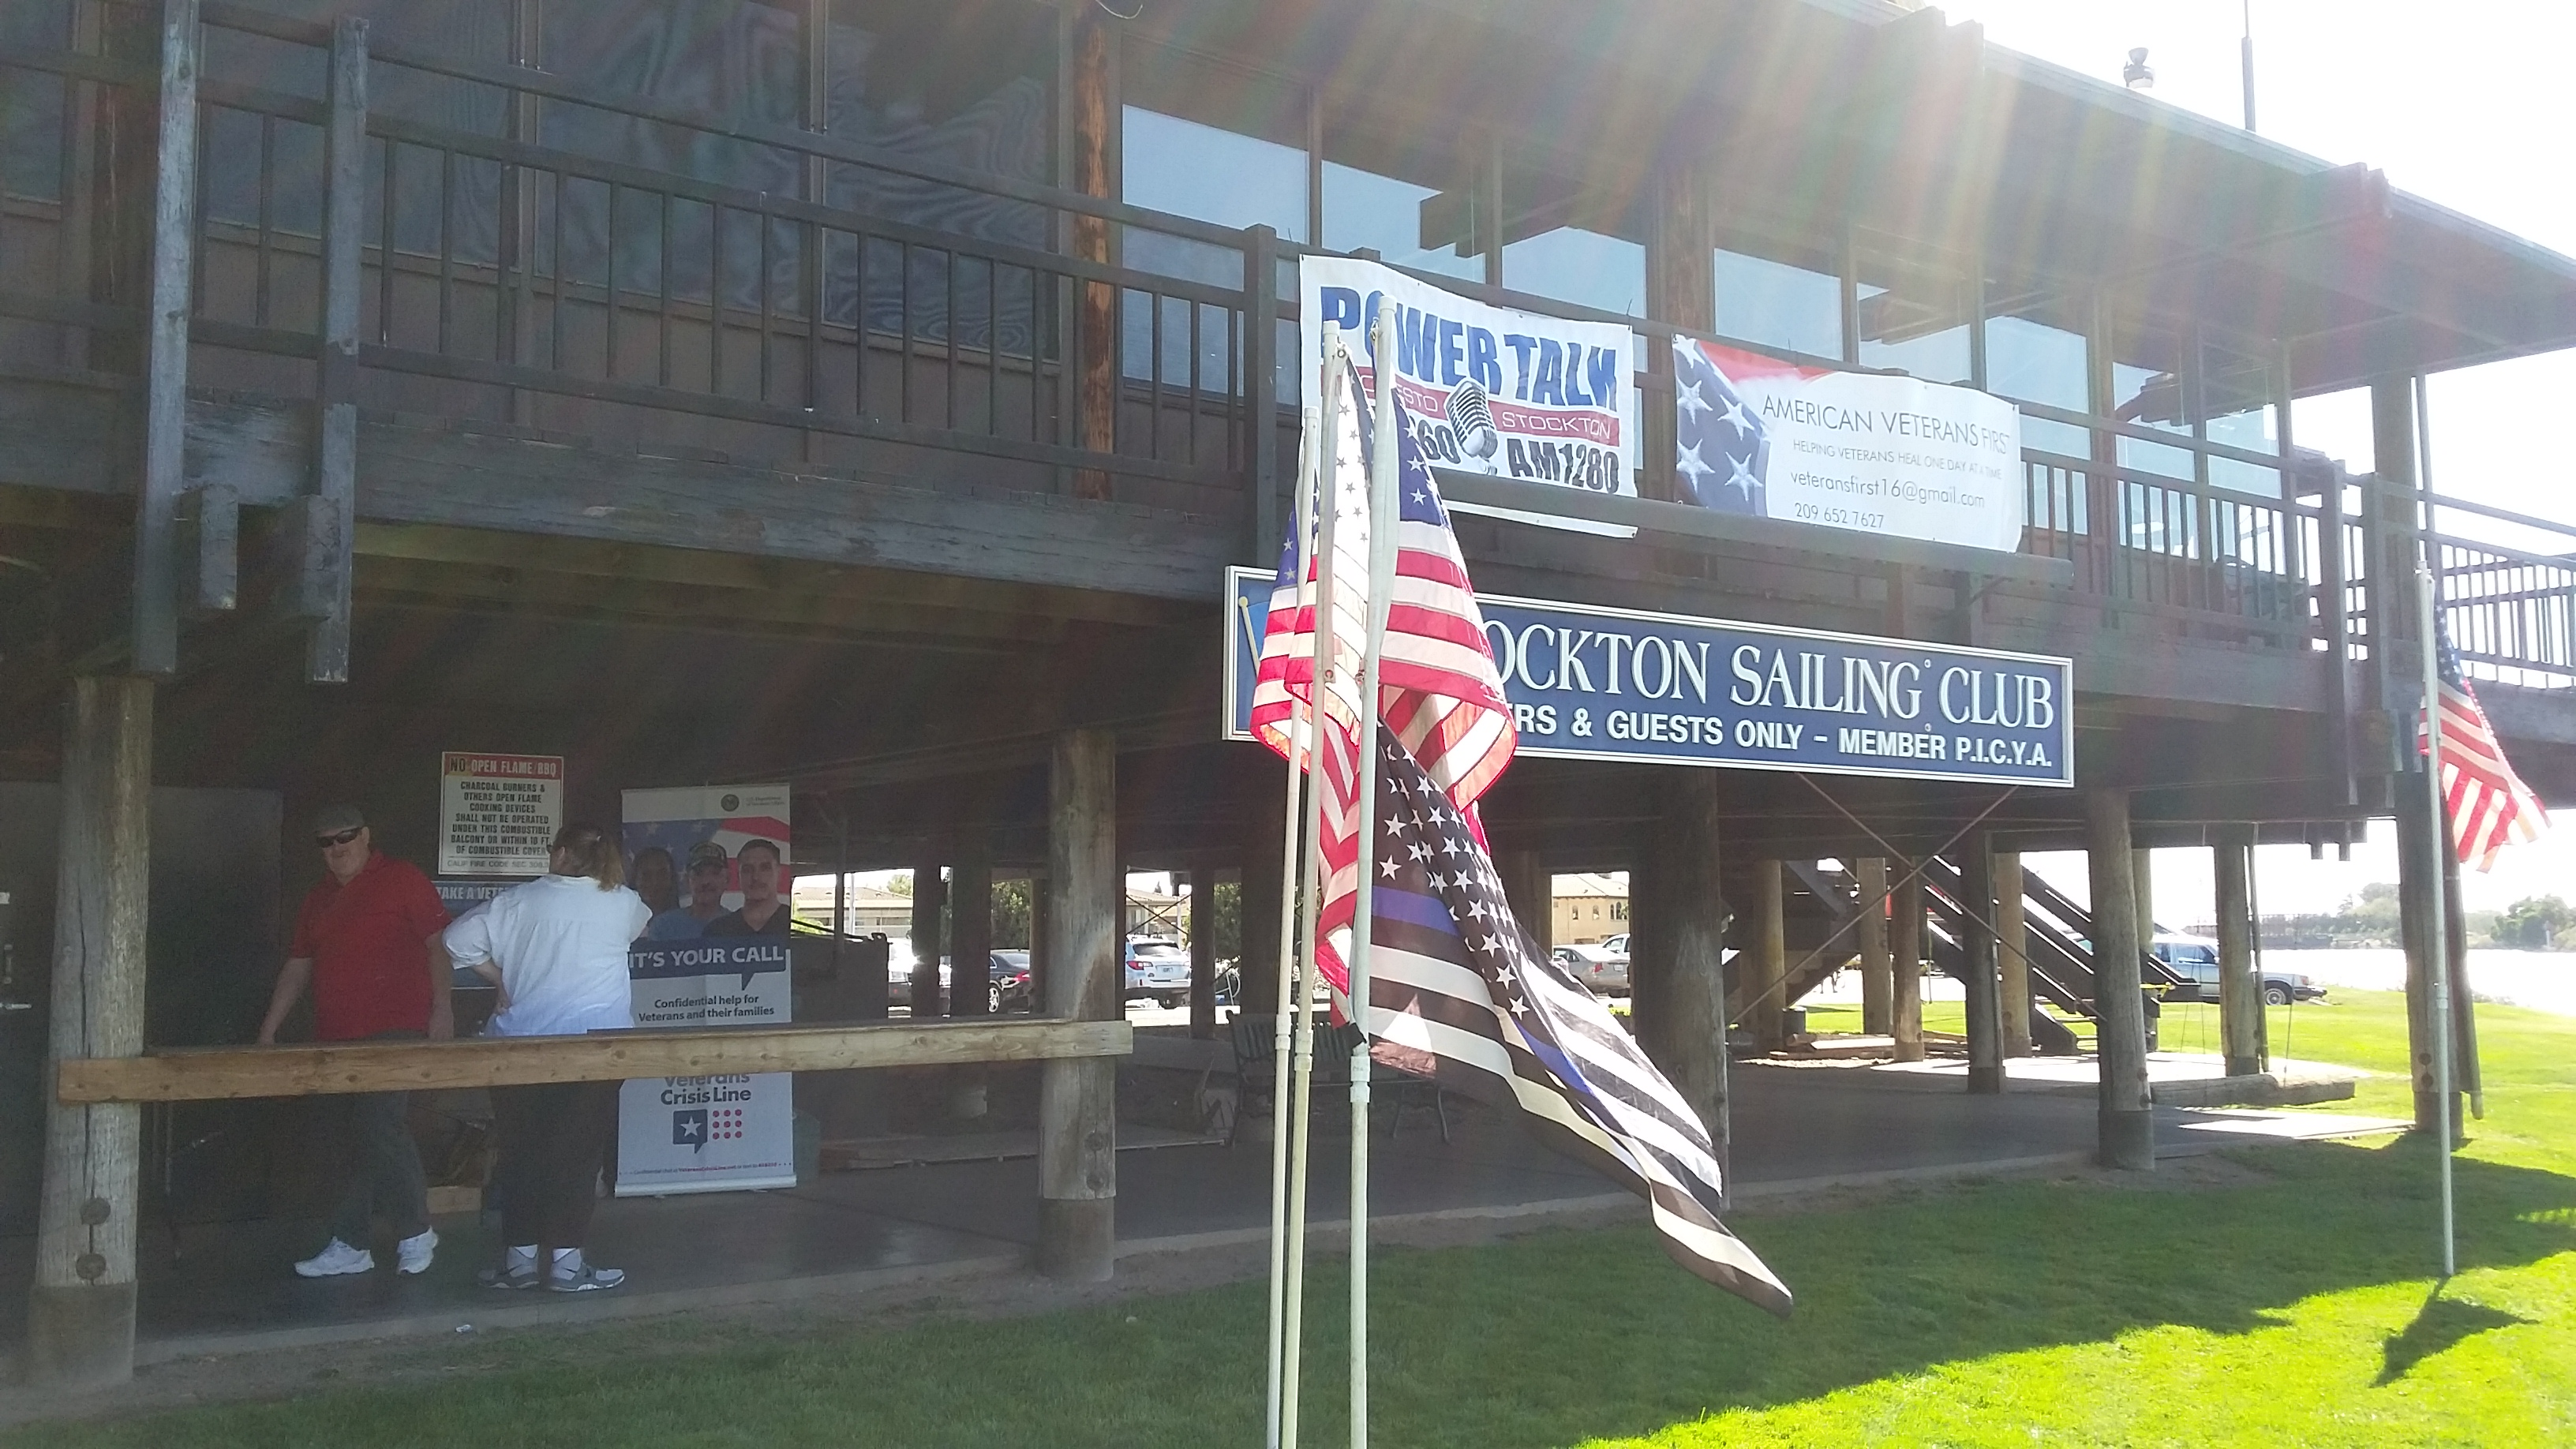 Veterans' Sail to Recovery - Flags + Signs UP